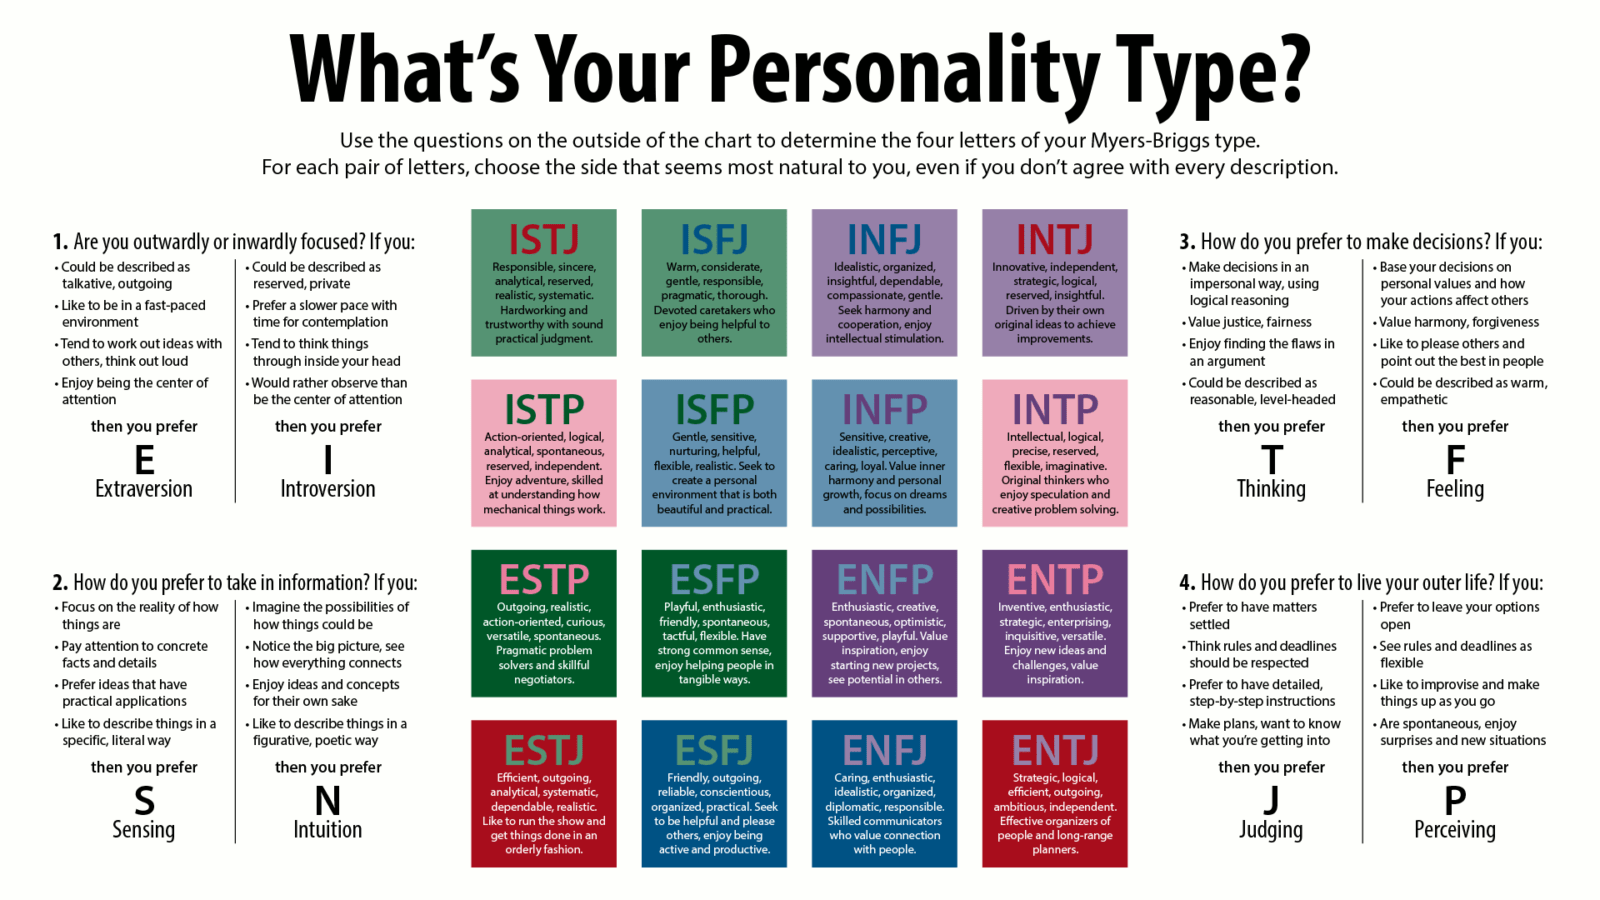 MyersBriggs Personality Type 1